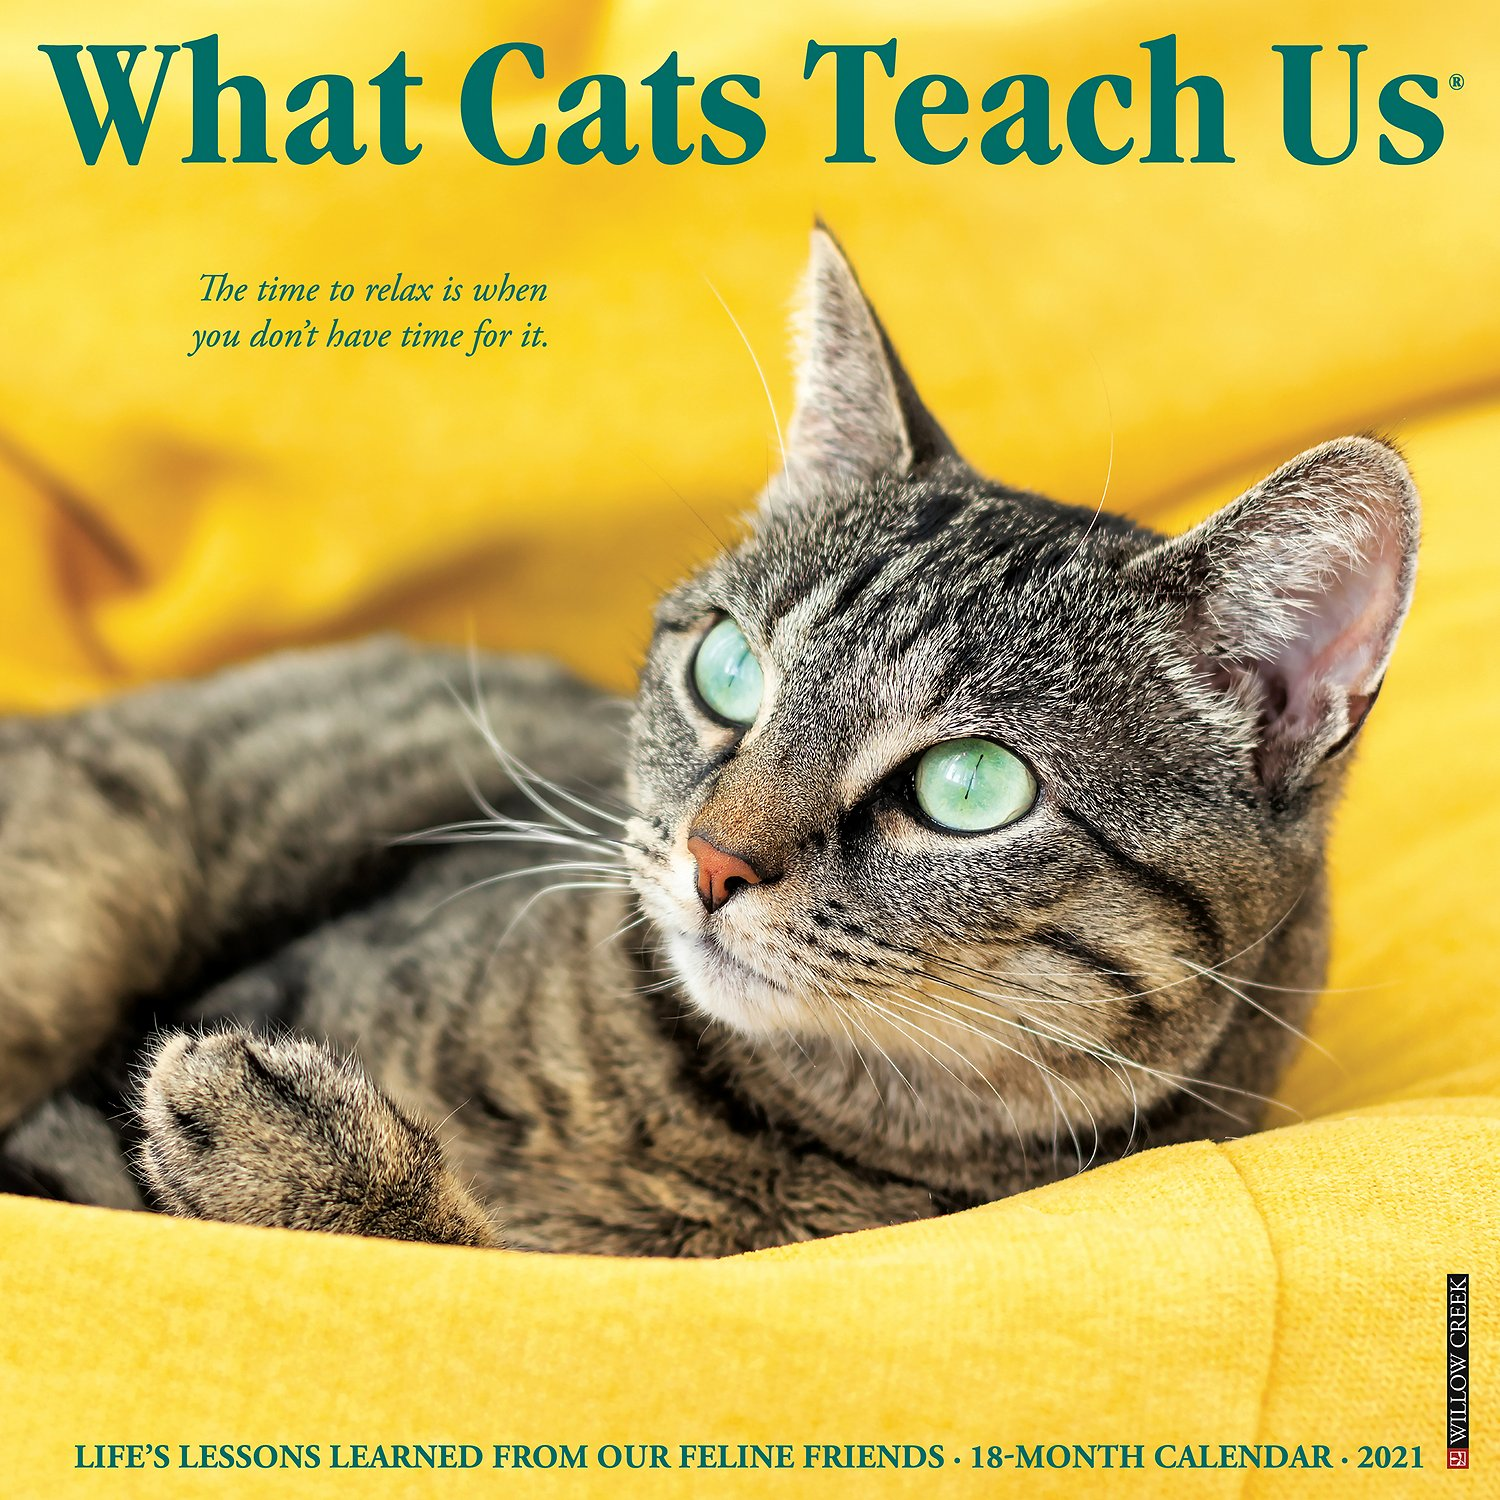 What Cats Teach Us 2021 Wall Calendar - Chewy.com